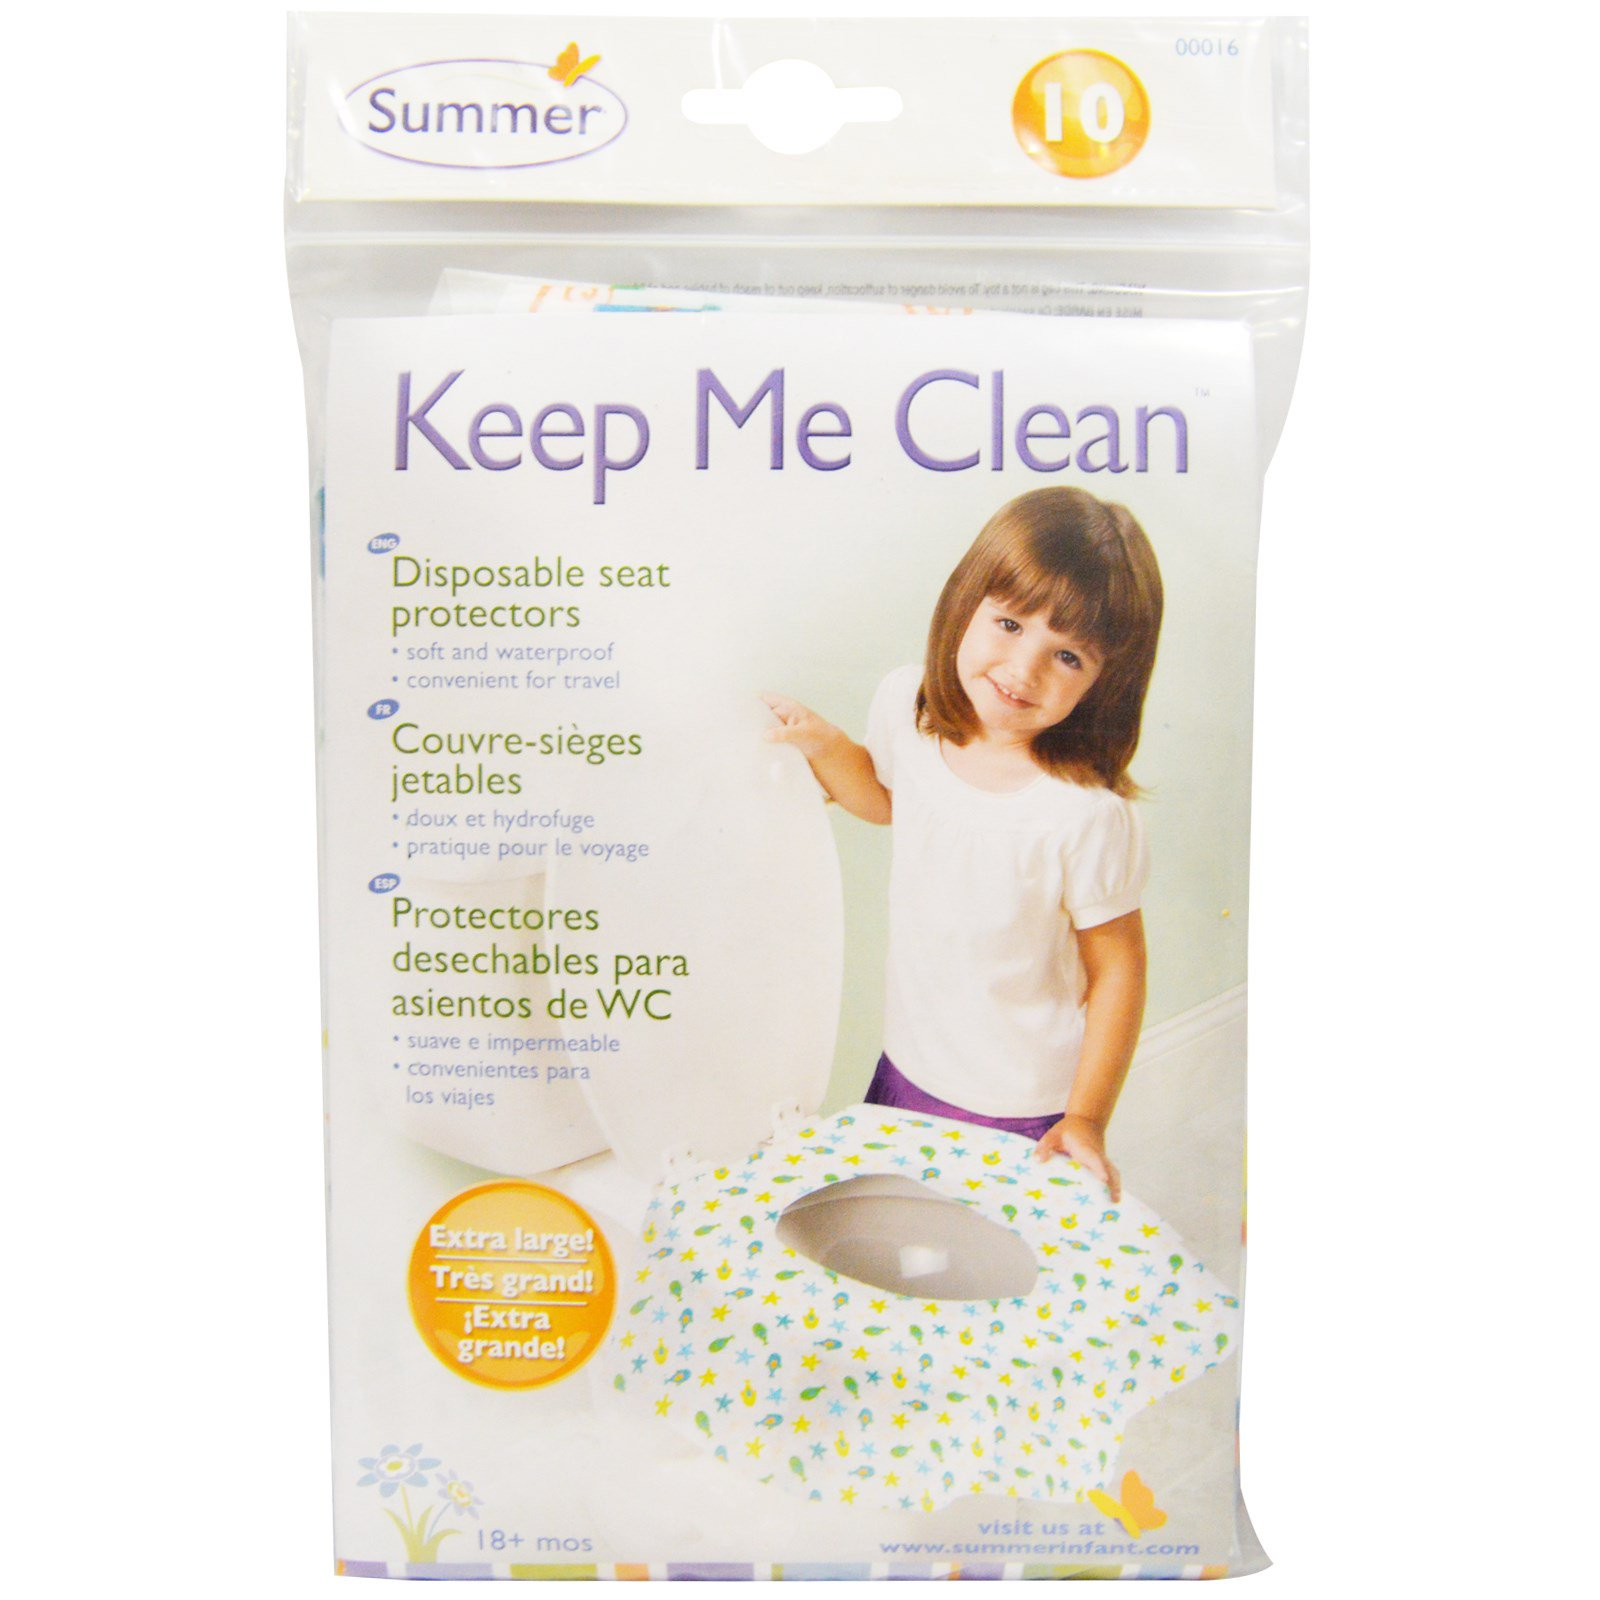 Diapering Sweety Popok Bayi Comfort Gold Tape M 48 Summer Infant Keep Me Clean Disposable Seat Protectors 10